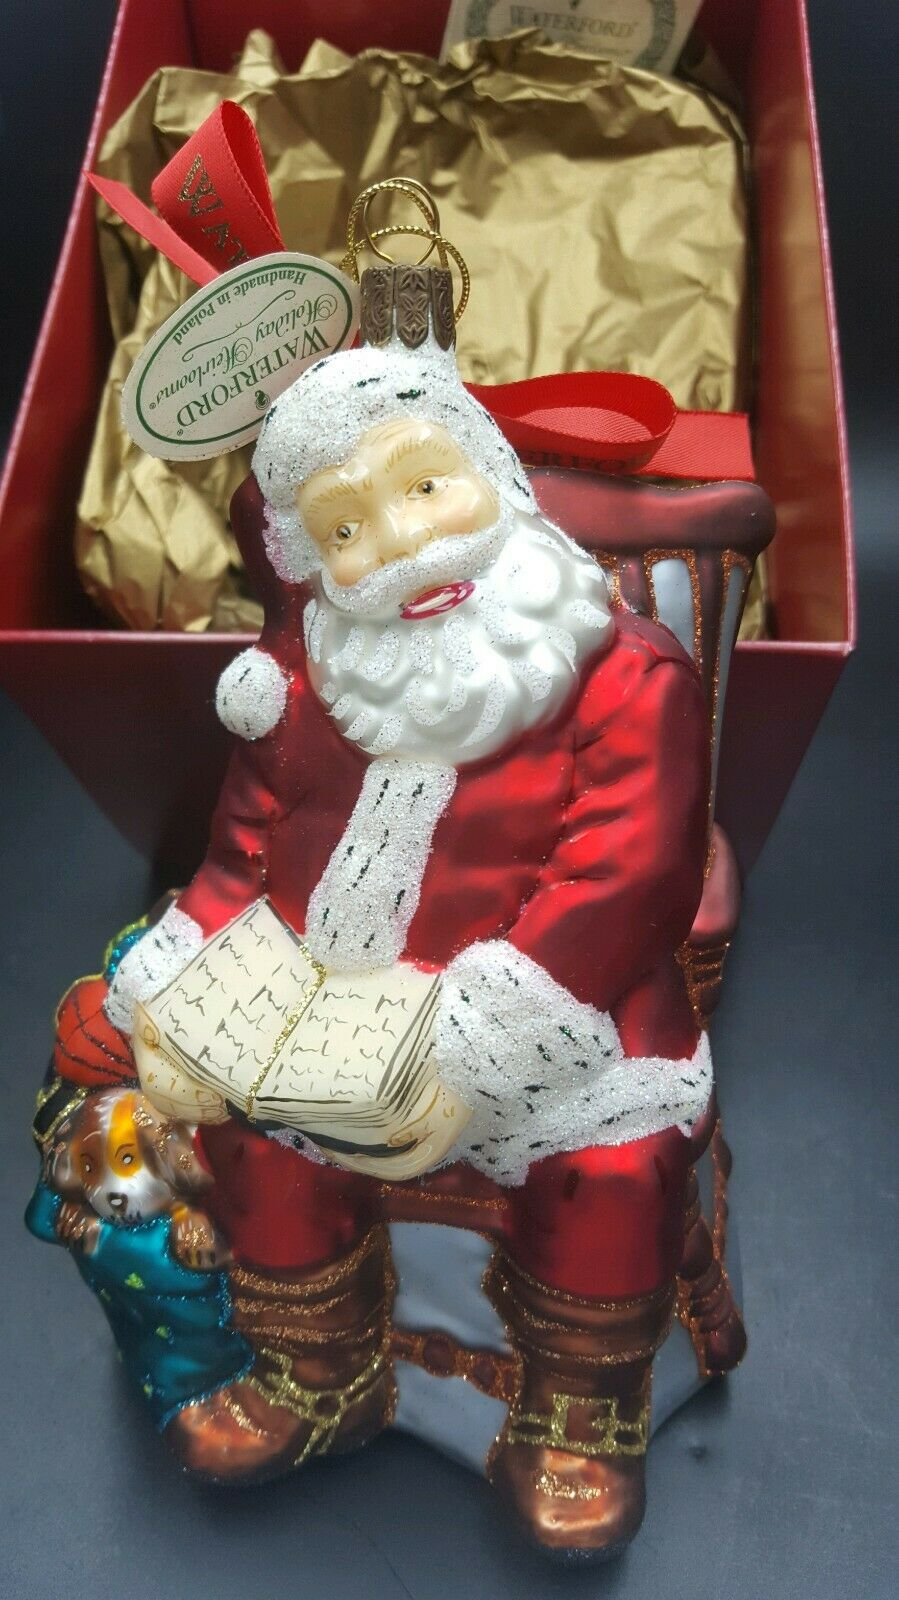 Waterford Holiday Heirlooms 2004 Break Break Break Time for Santa 130823 Limited Edition NIB a8562e